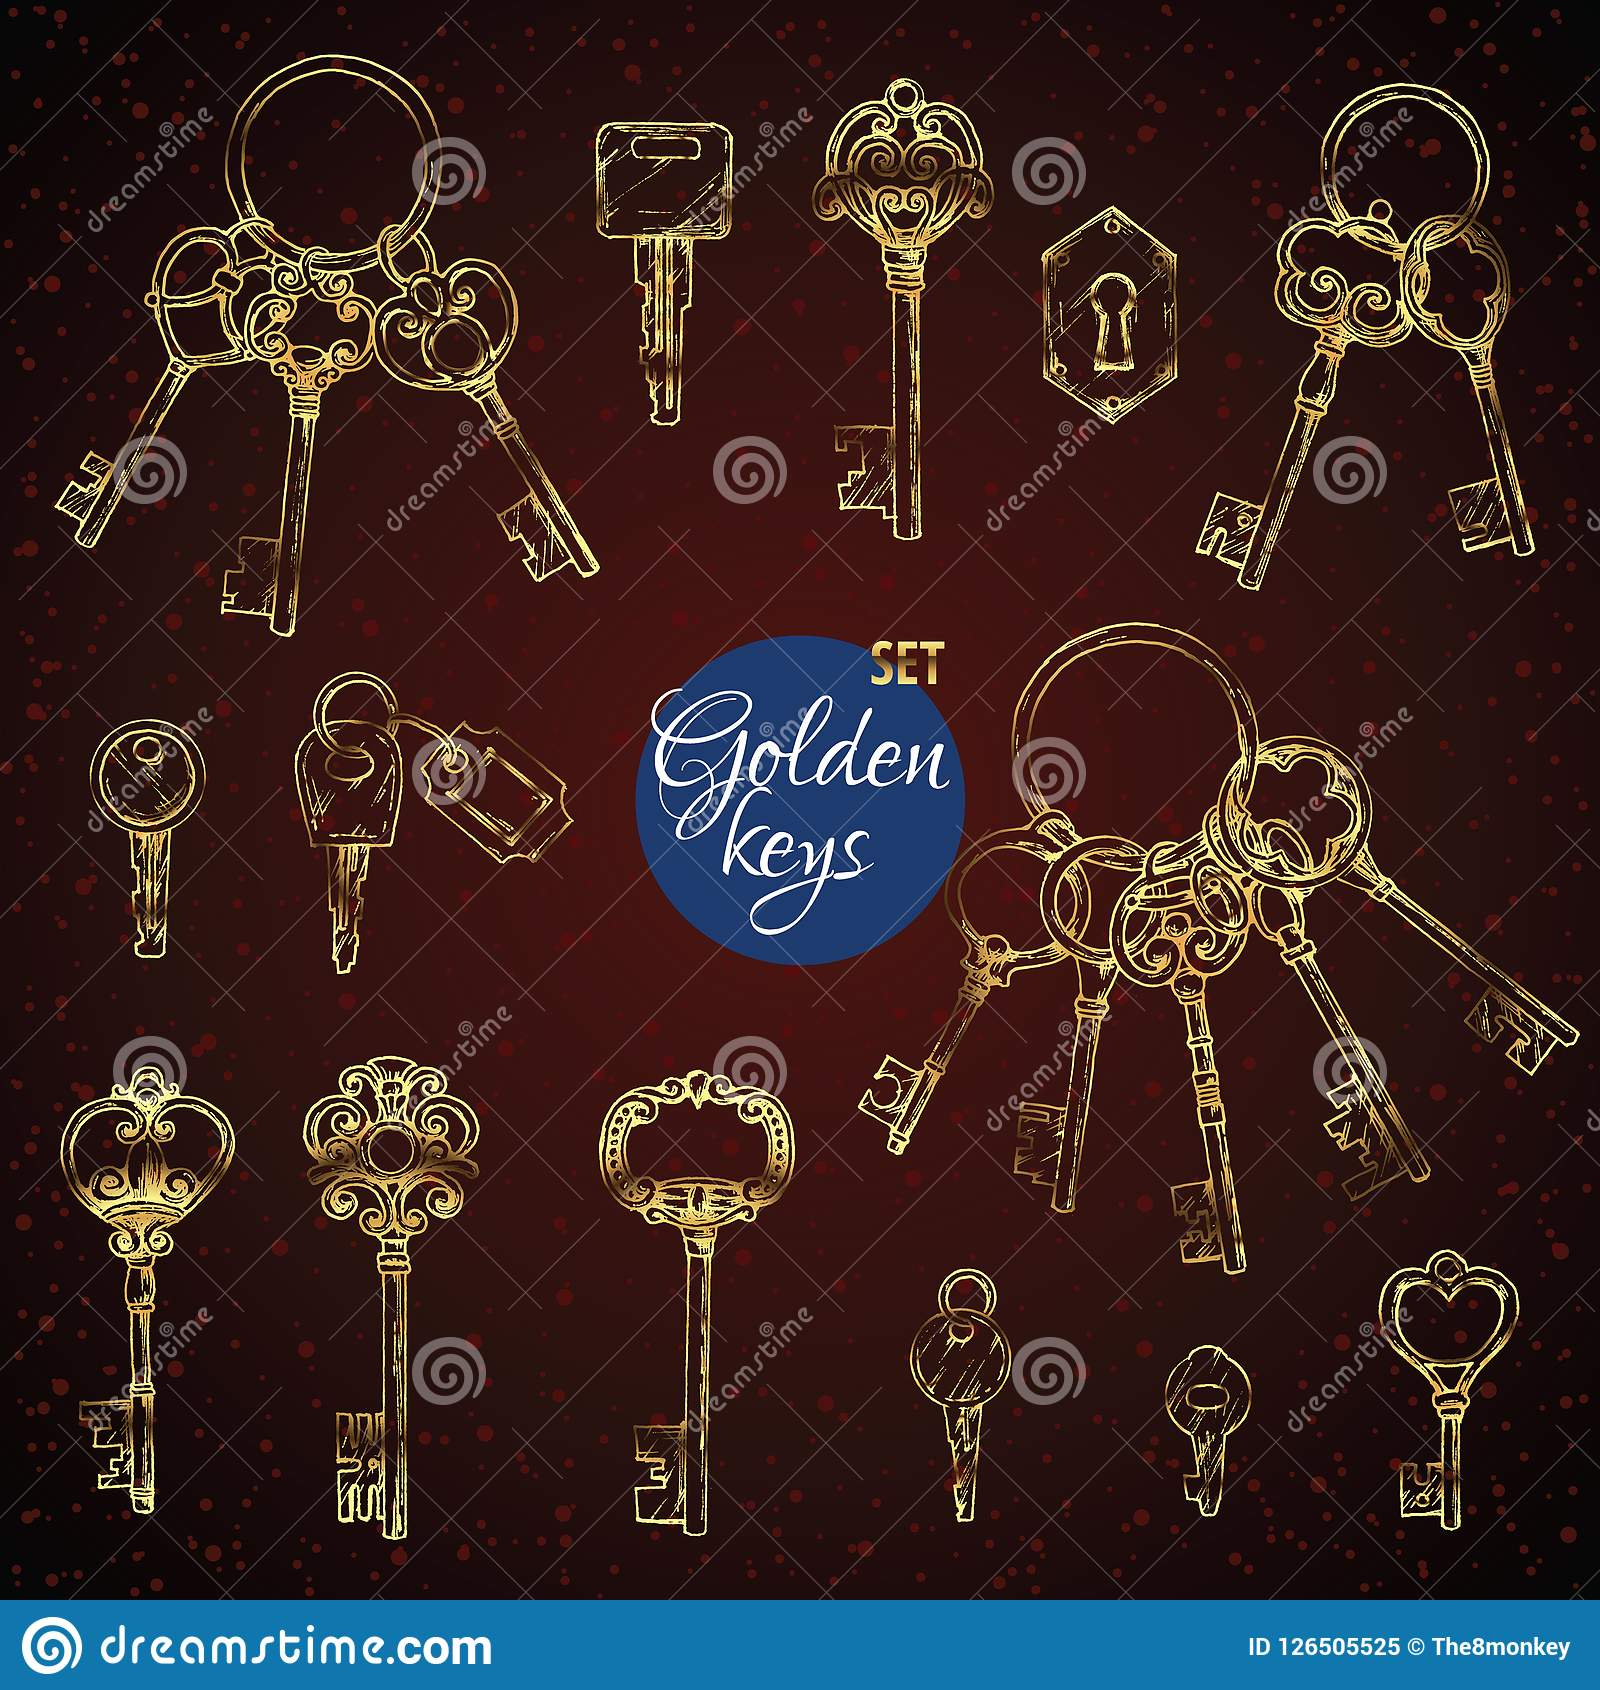 vector set of hand-drawn antique keys  illustration in sketch style on  white background